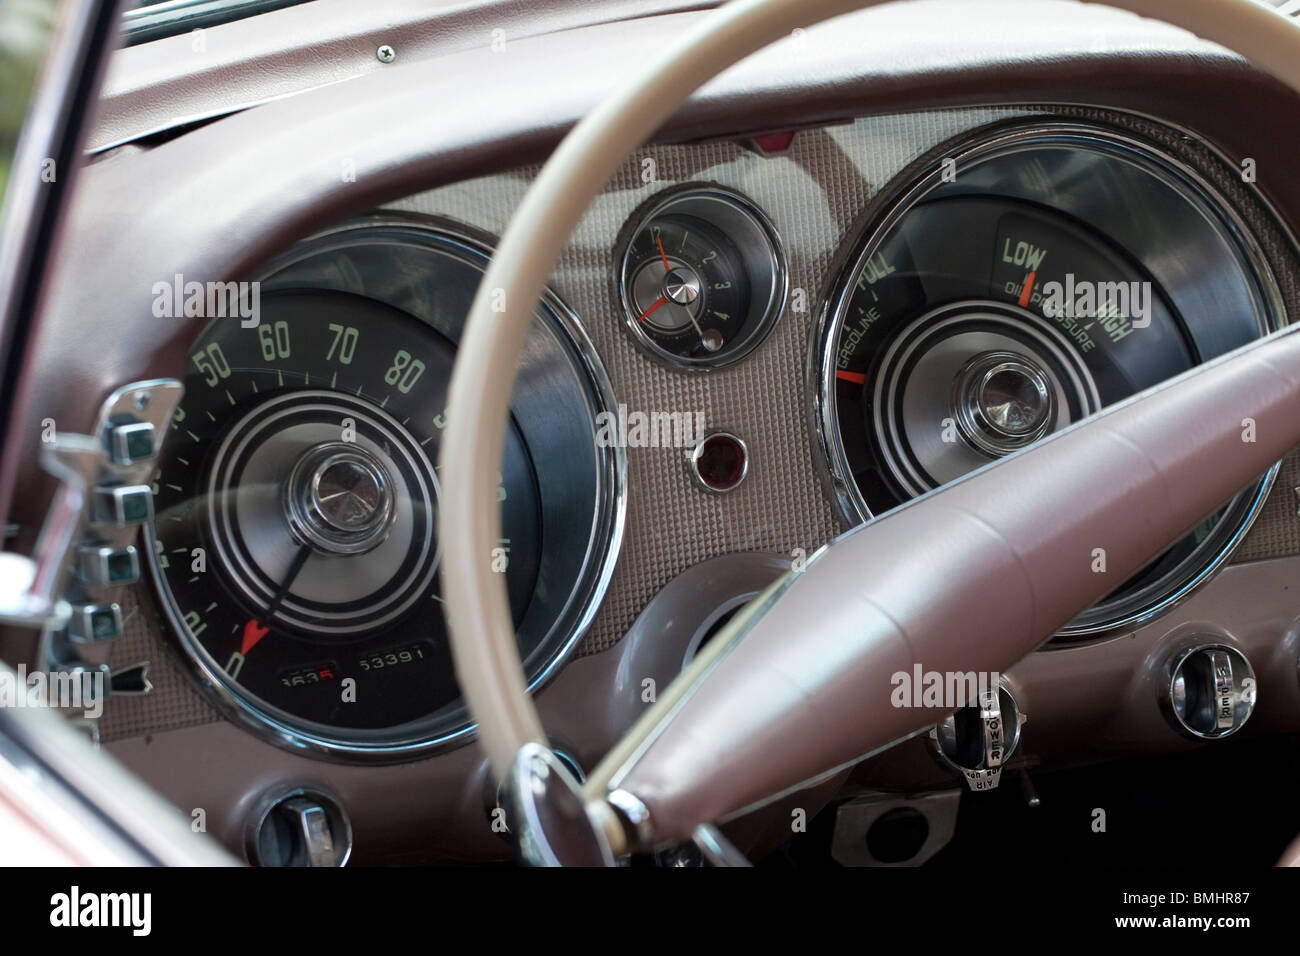 An old classic Cadillac steering wheel showing the speedometer and steering wheel - Stock Image